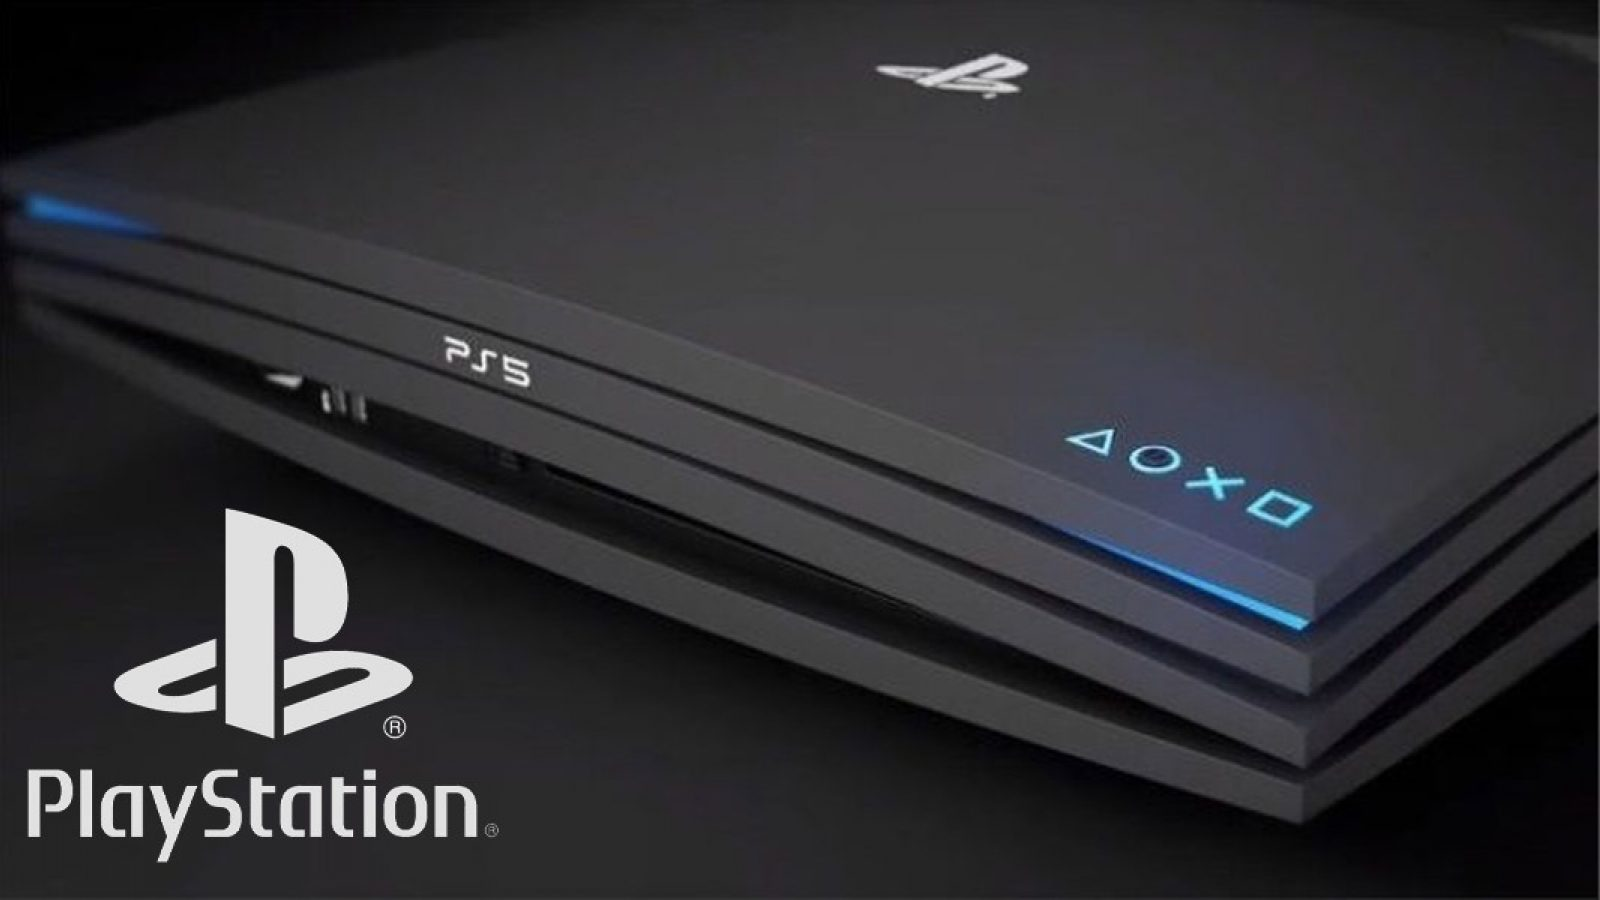 Ps5 Target Audience To Be Hardcore Gamers